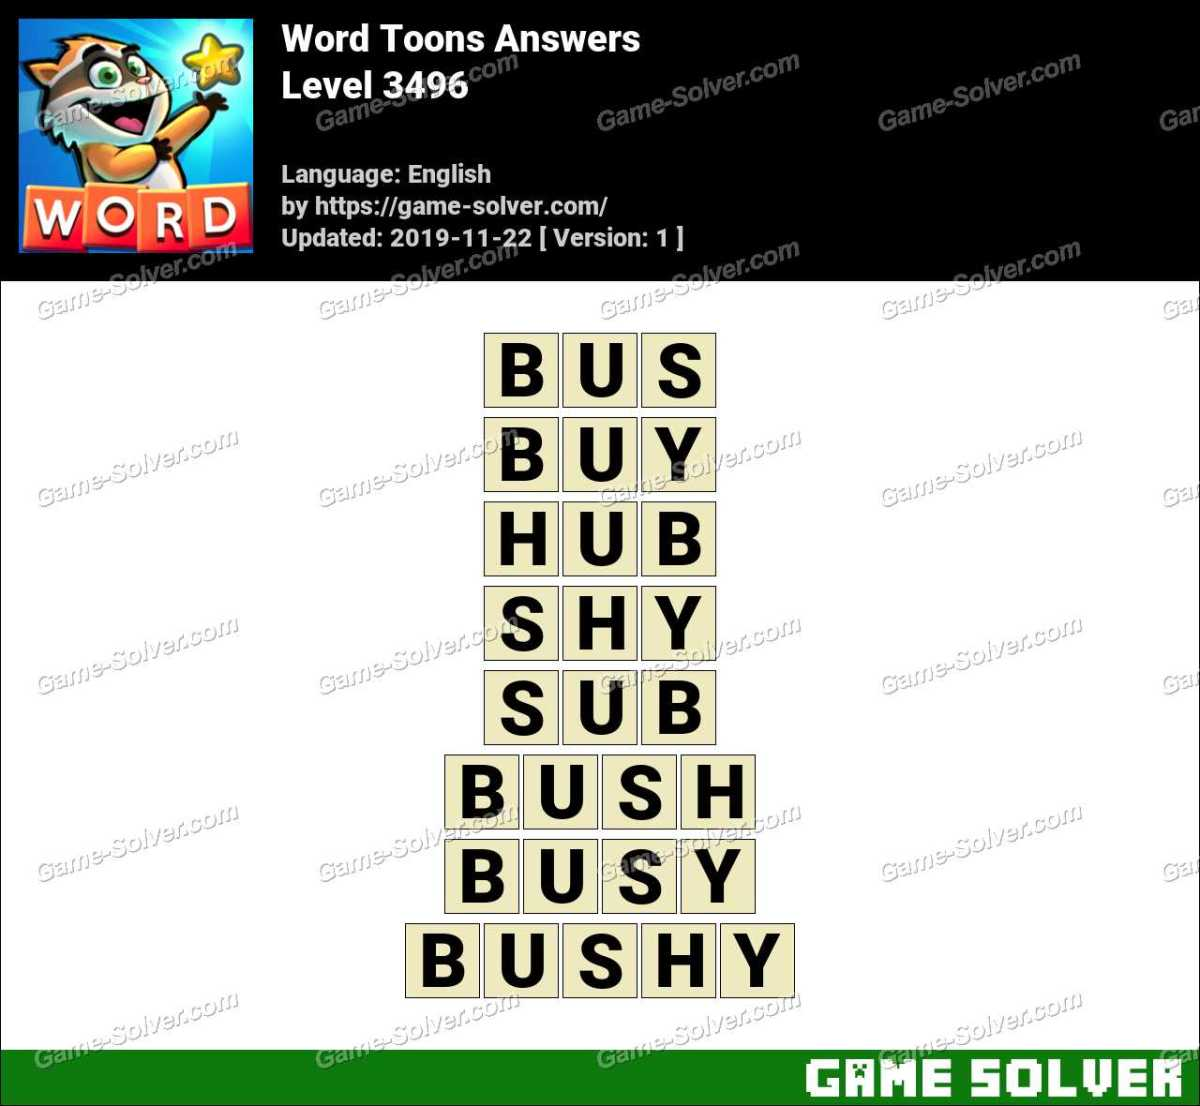 Word Toons Level 3496 Answers